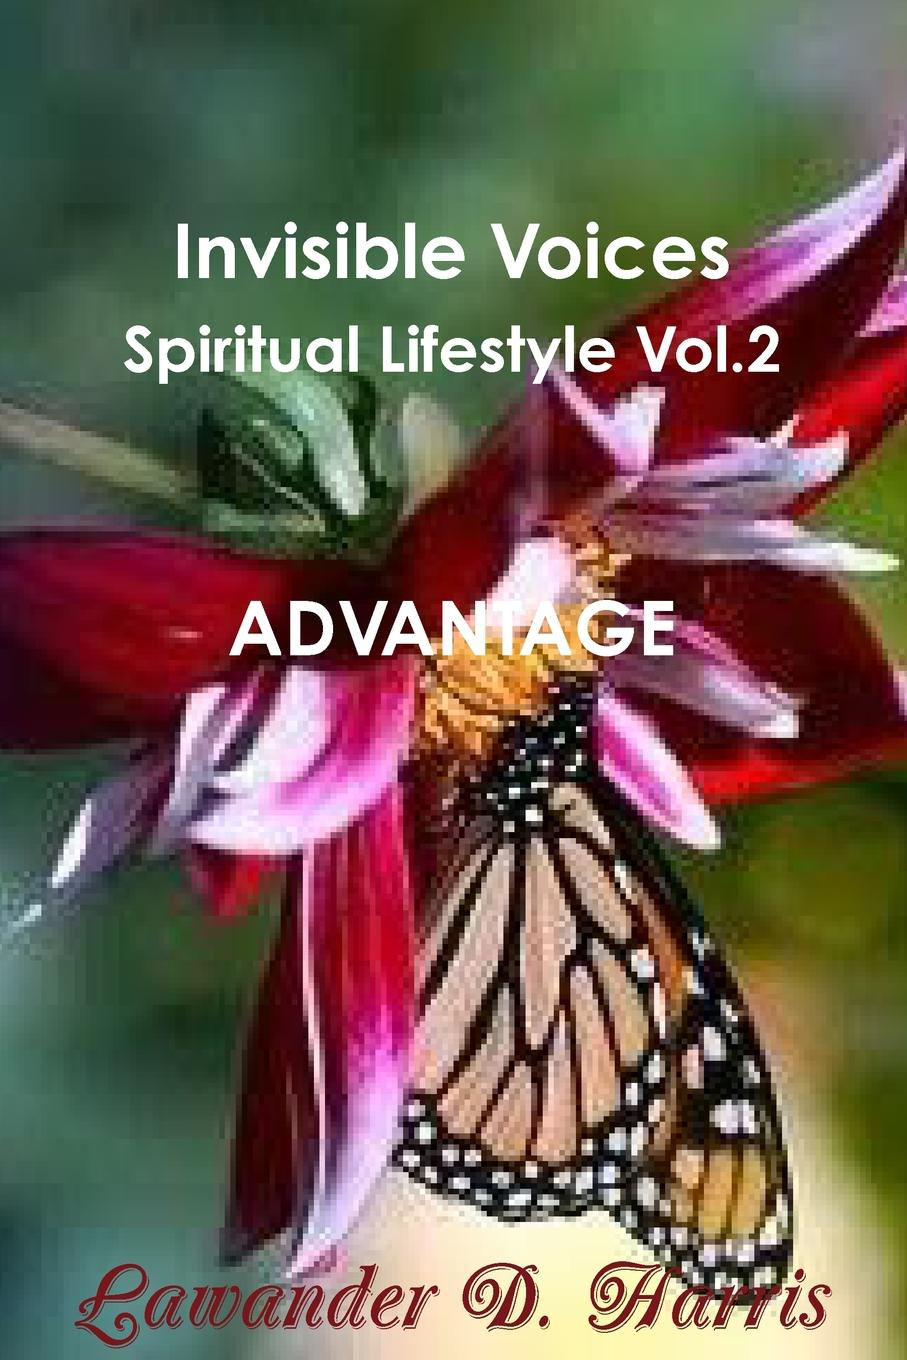 Lawander Harris Invisible Voices Spiritual Lifestyle Vol. 2 ADVANTAGE lawander harris invisible voices spiritual lifestyle vol 2 advantage